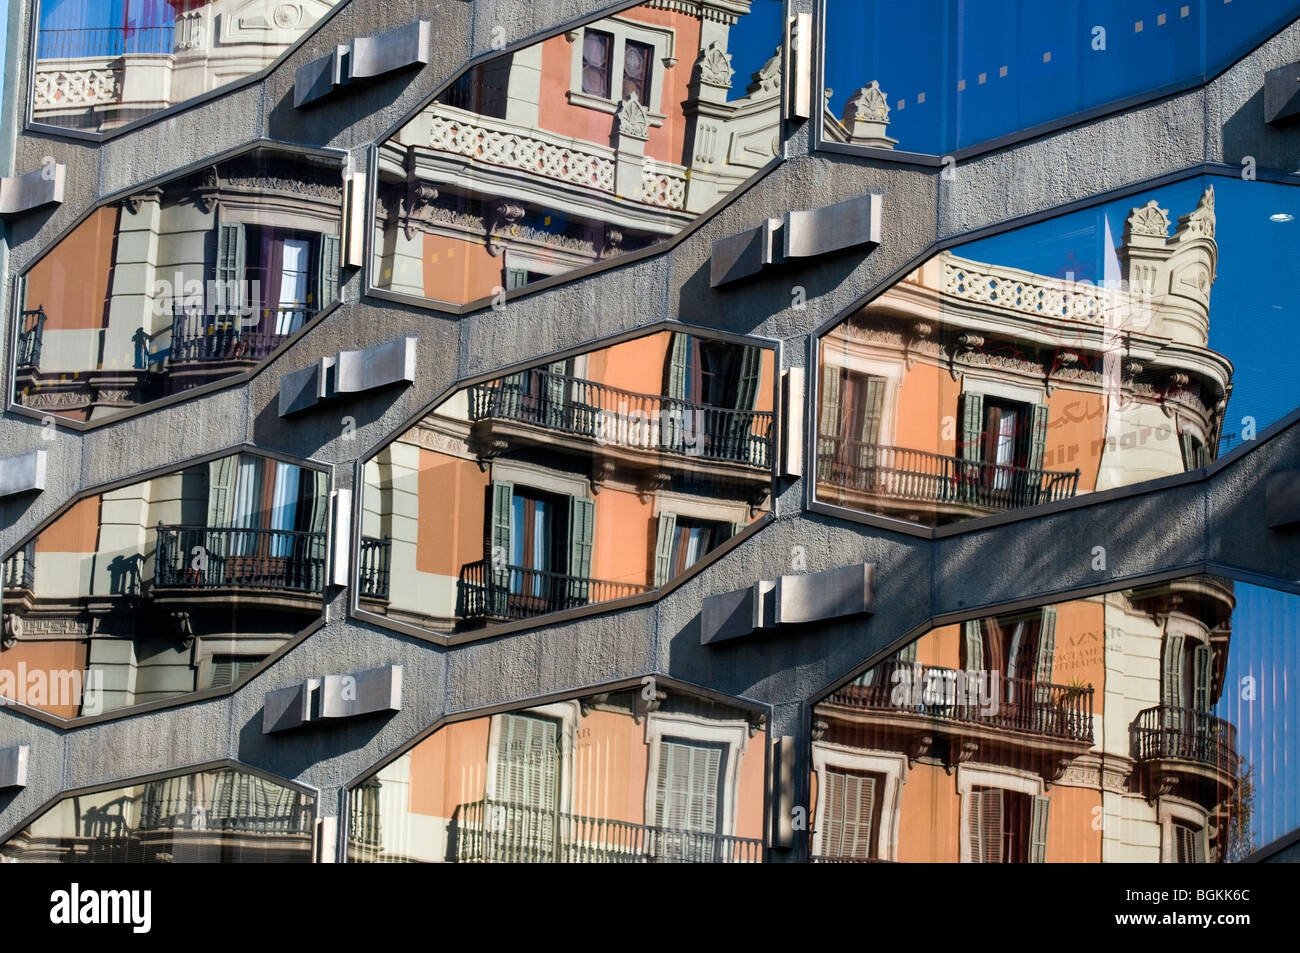 New and old buildings' reflection in Plaça de Urquinaona, Barcelona, Catalunya, Spain - Stock Image